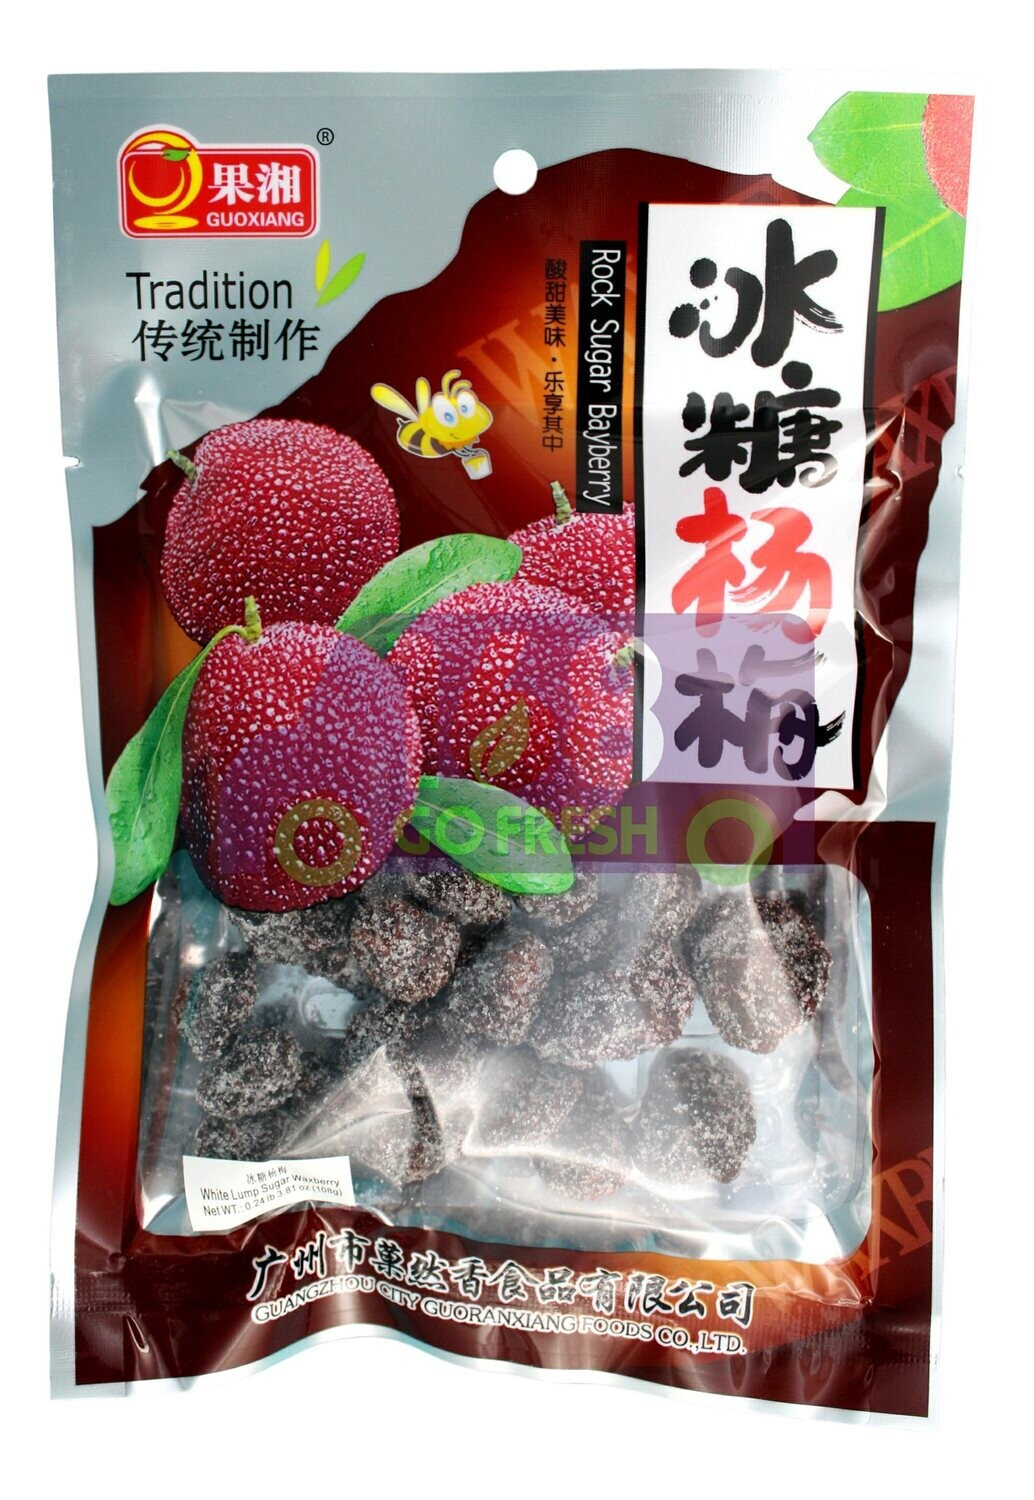 GUOXIANG ROCK CANDY WAXBERRY 果湘 冰糖杨梅(108G)